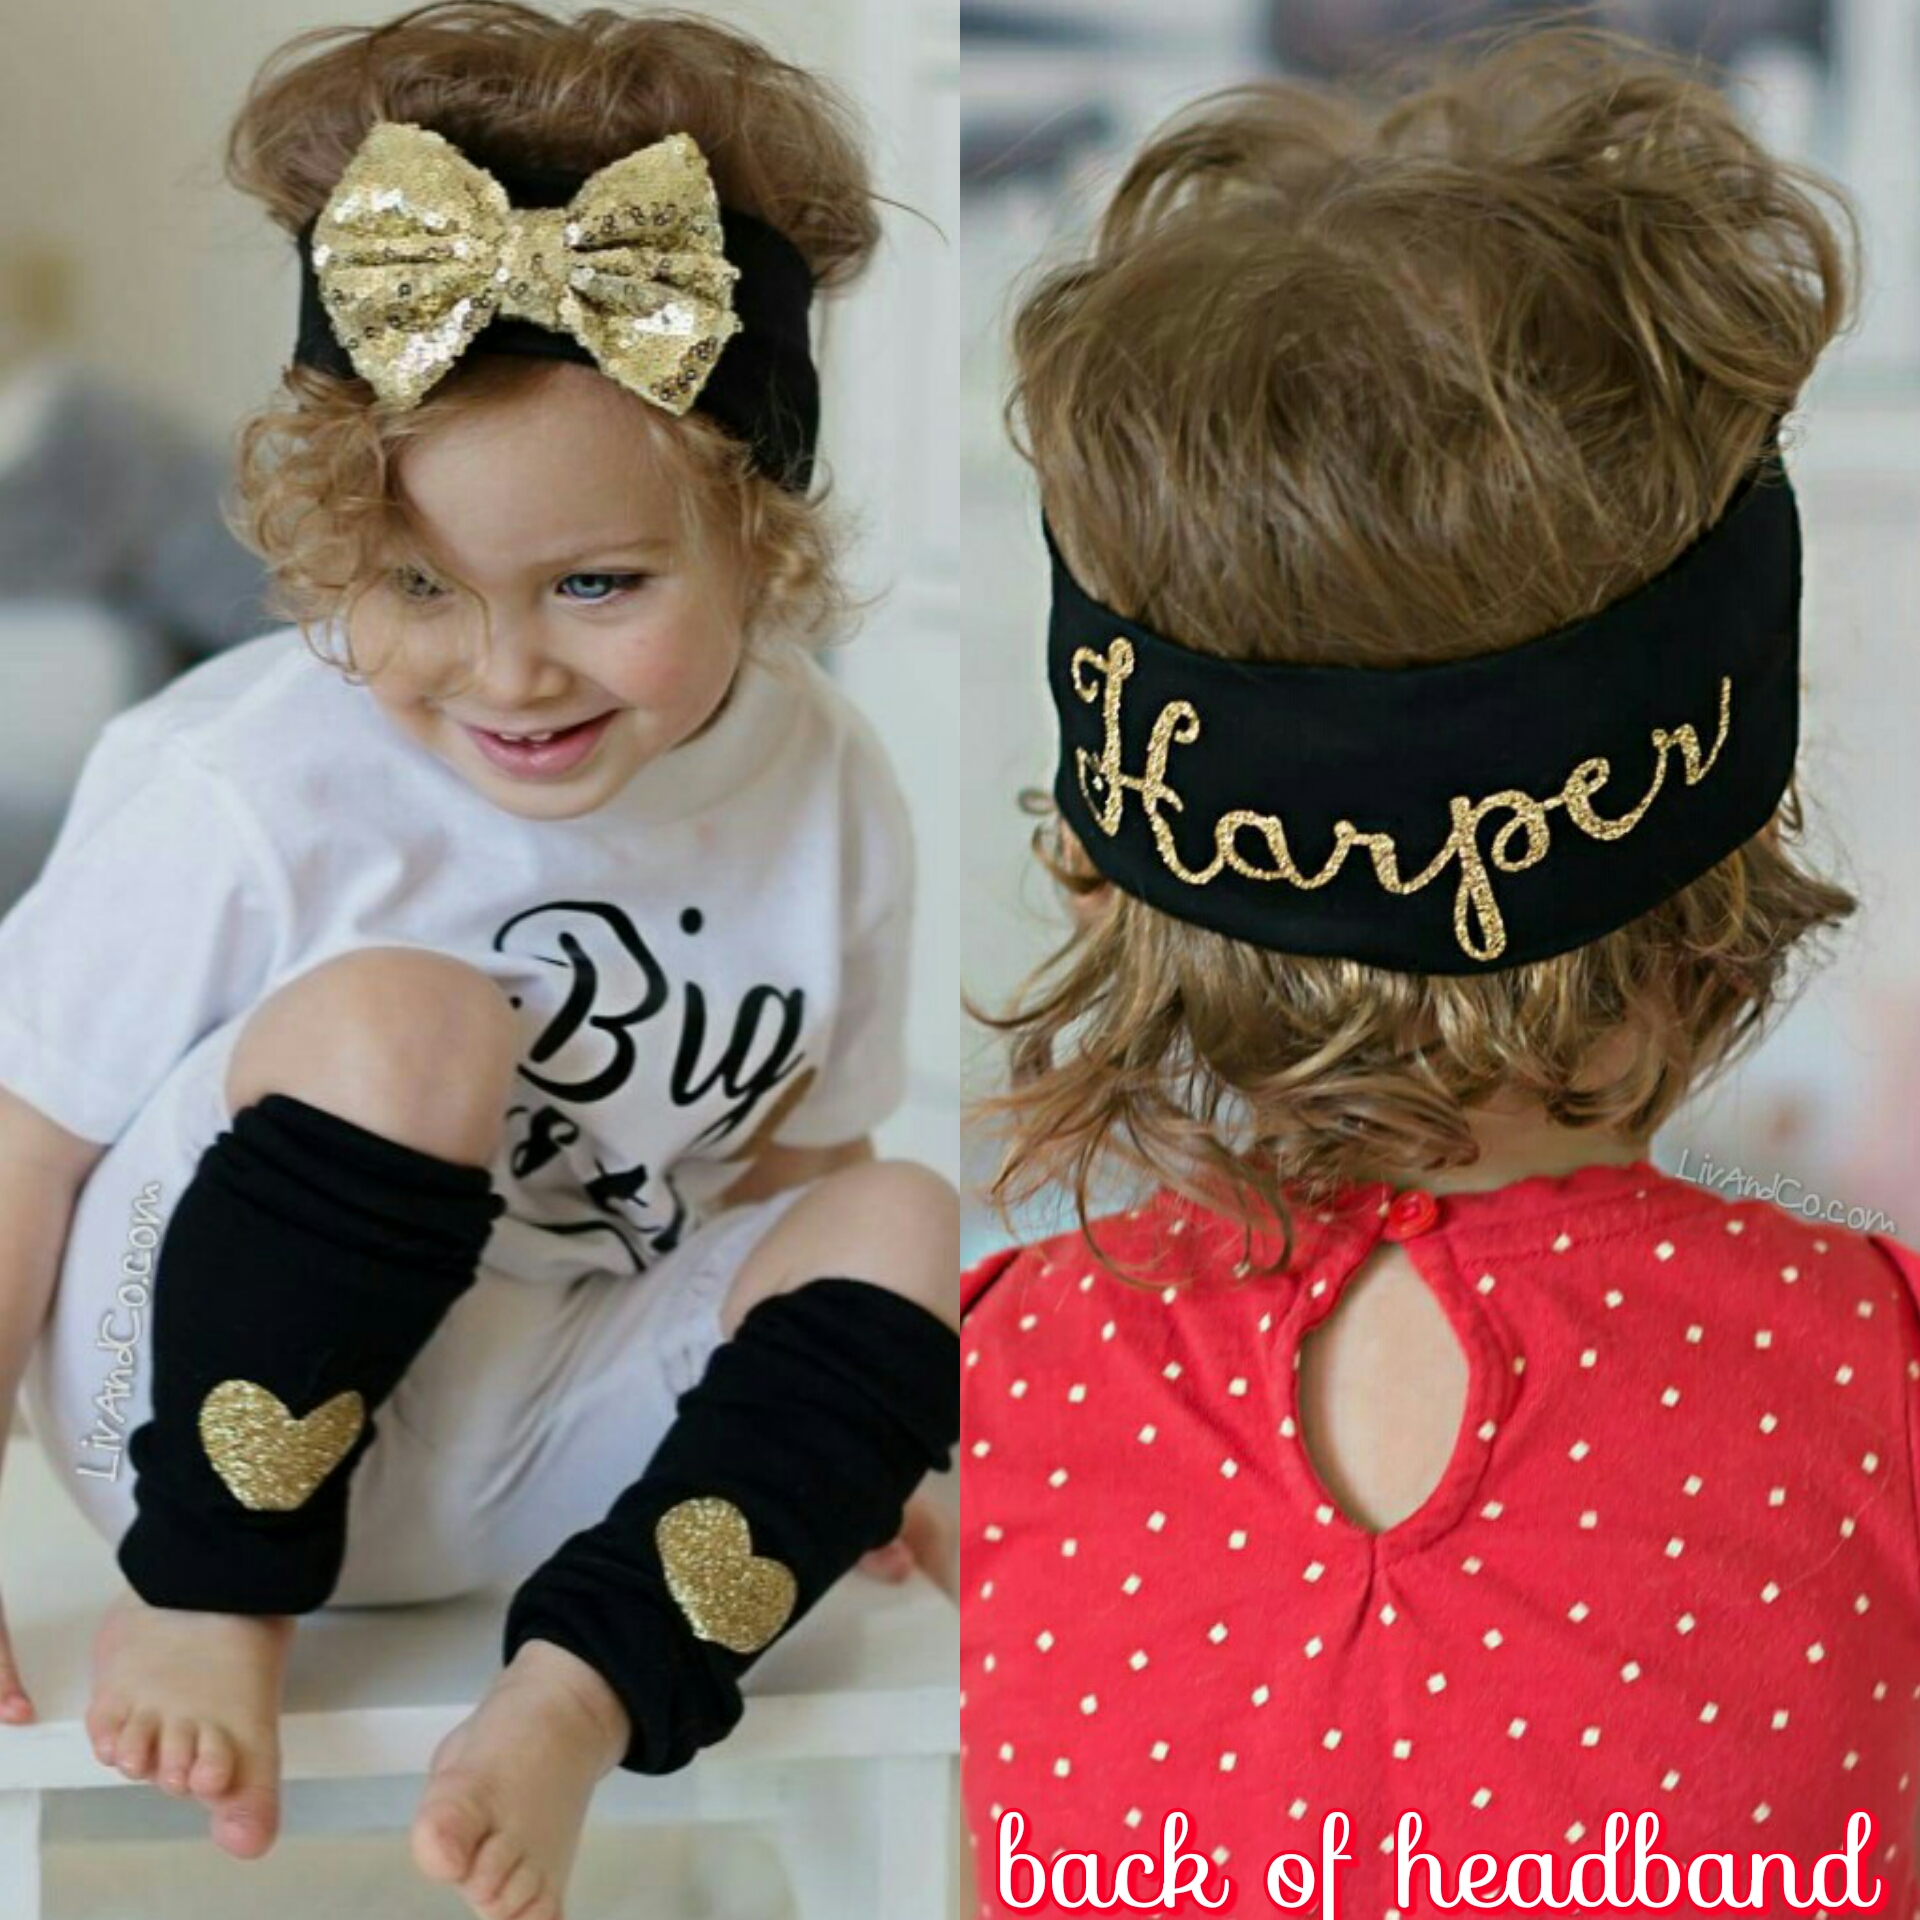 Baby Girl Headands - Toddler Girl Headbands 6994358d8c7